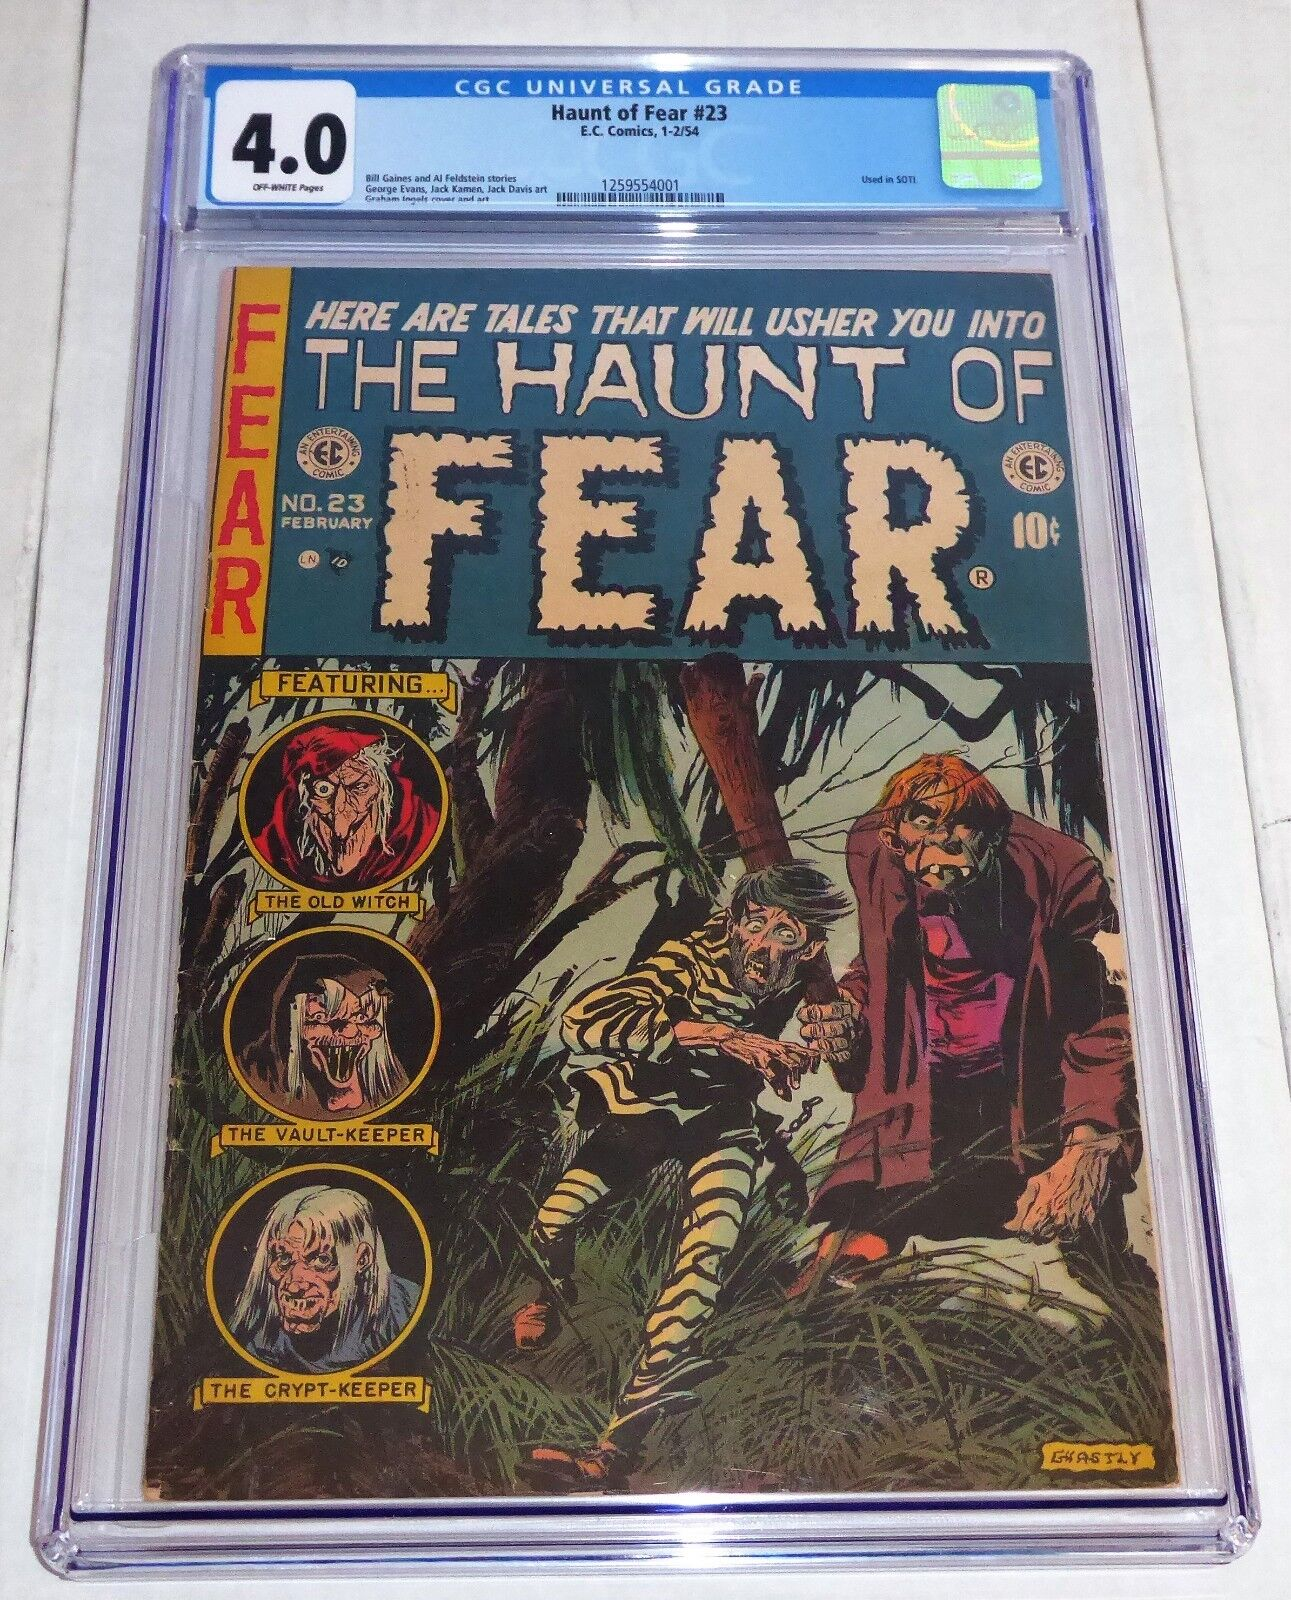 Haunt of Fear #23 E.C. EC Comics 1-2/54 CGC 4.0 Old Witch Vault Keeper Used SOTI